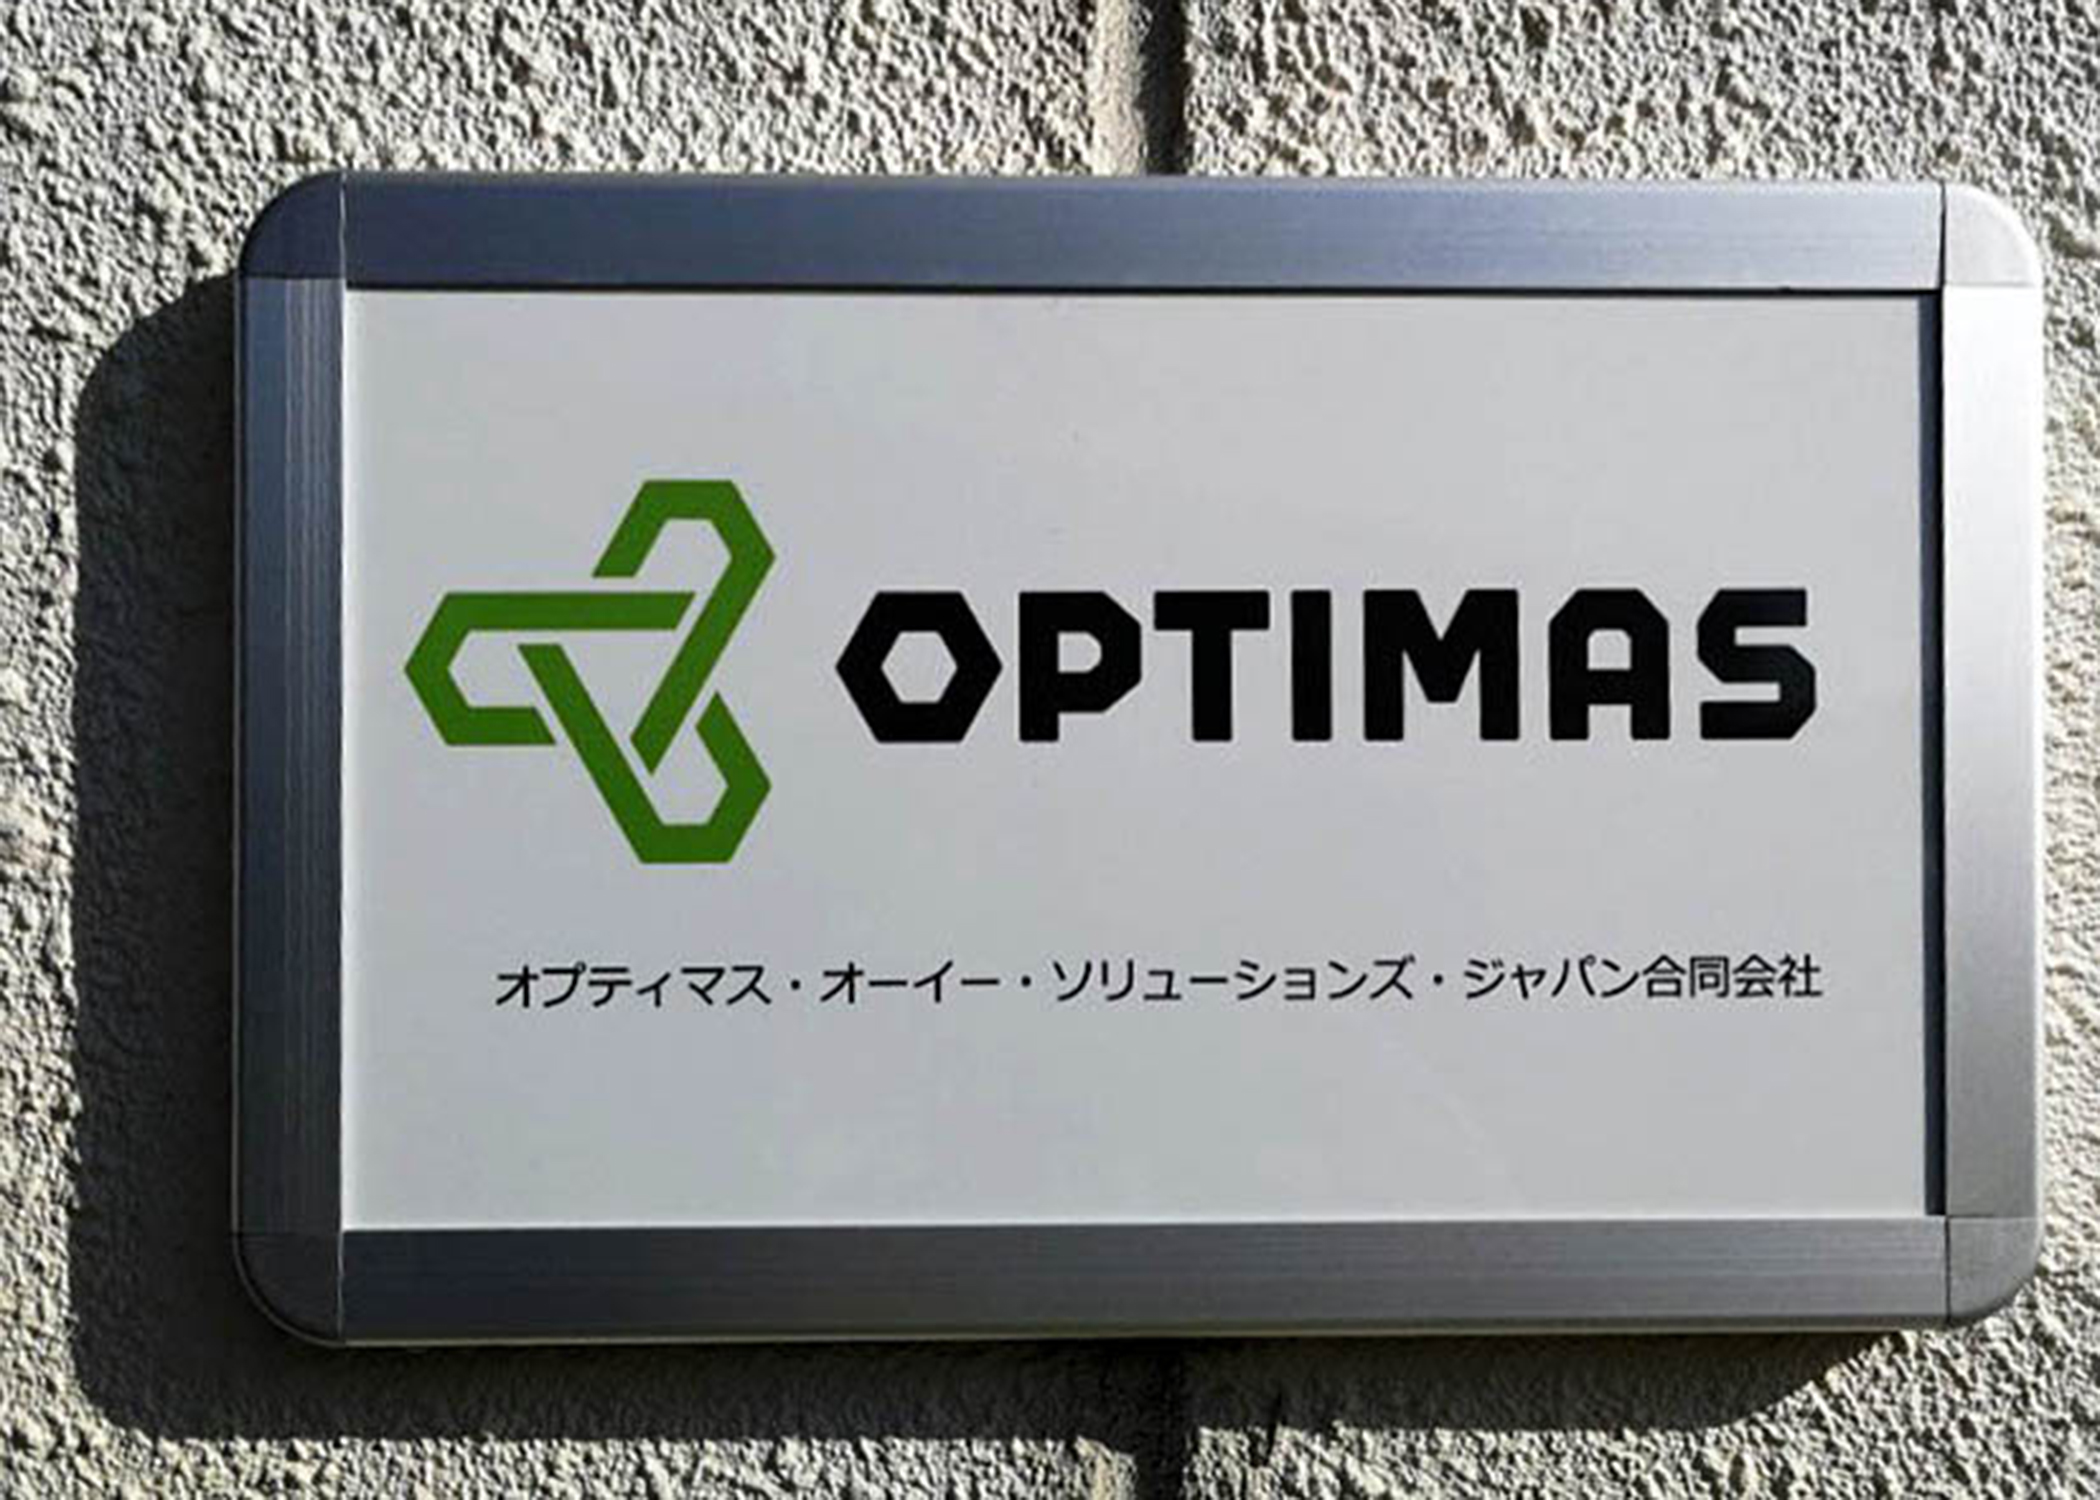 Optimas Reinforces Commitment to Asia Market with Japan Market Expansion